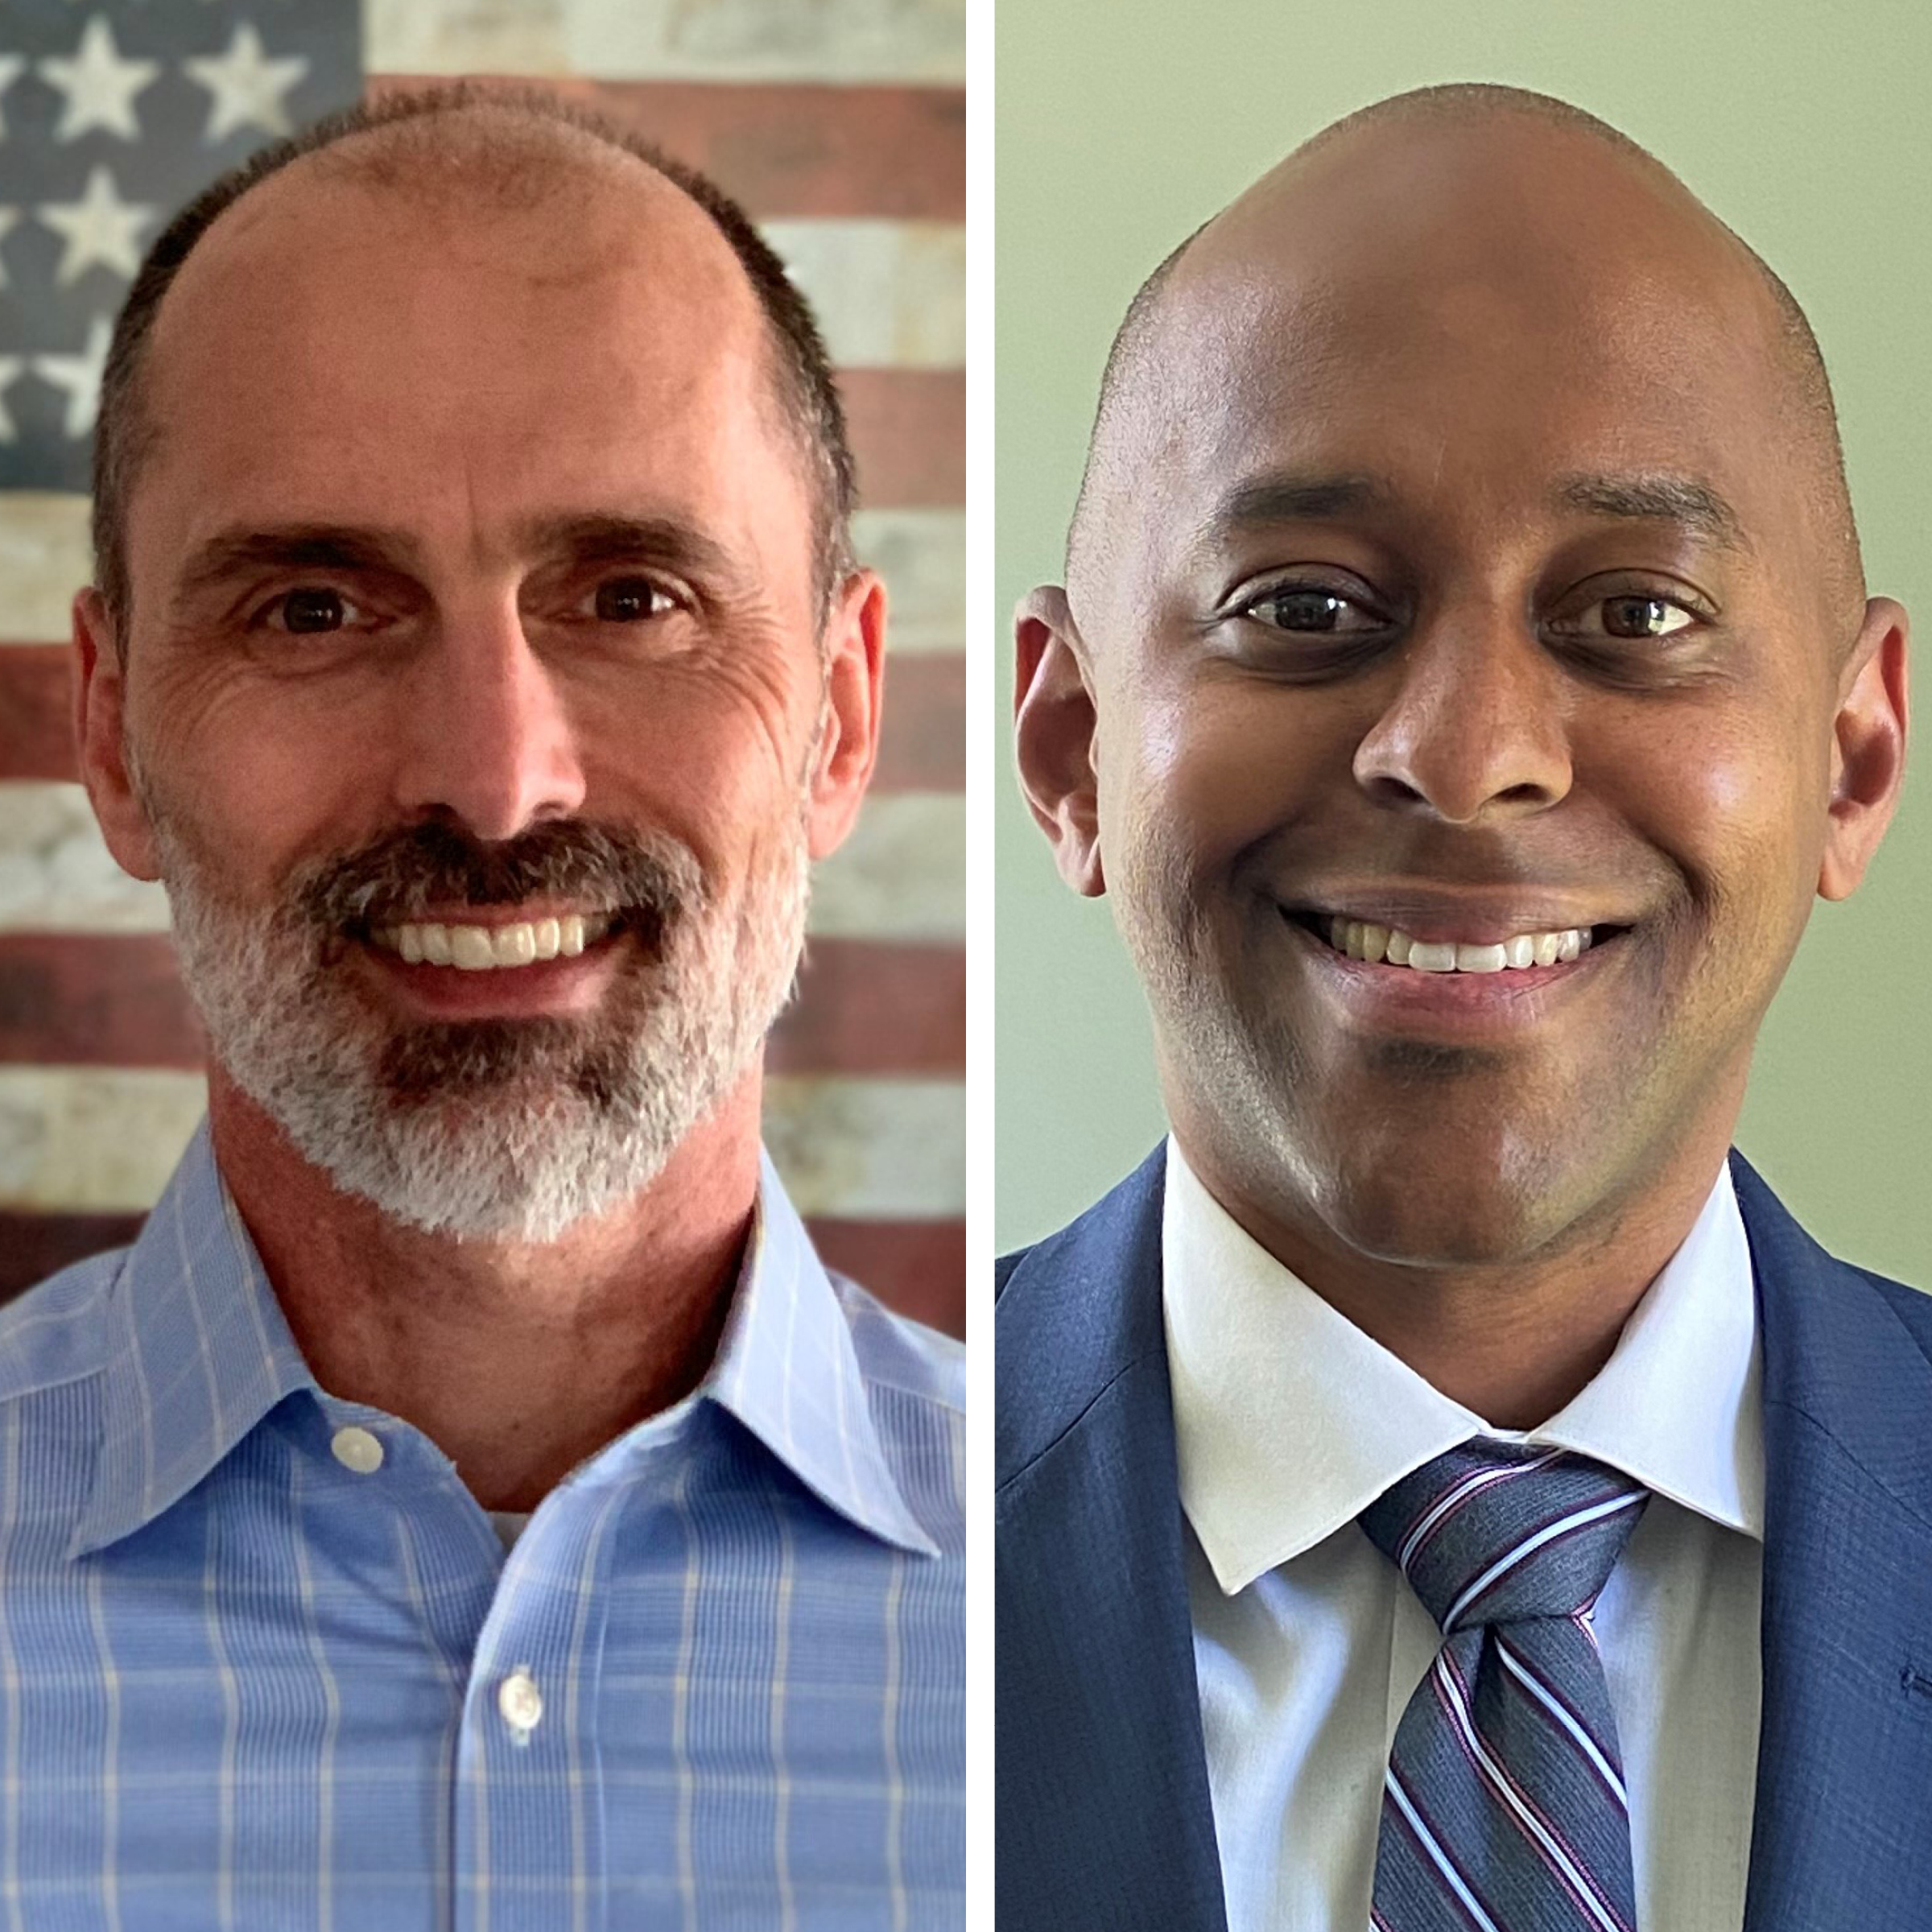 Rob Clemens in a light blue shirt in front of an American flag background, and Kariym Smith in a blue suit with white shirt and blue tie.